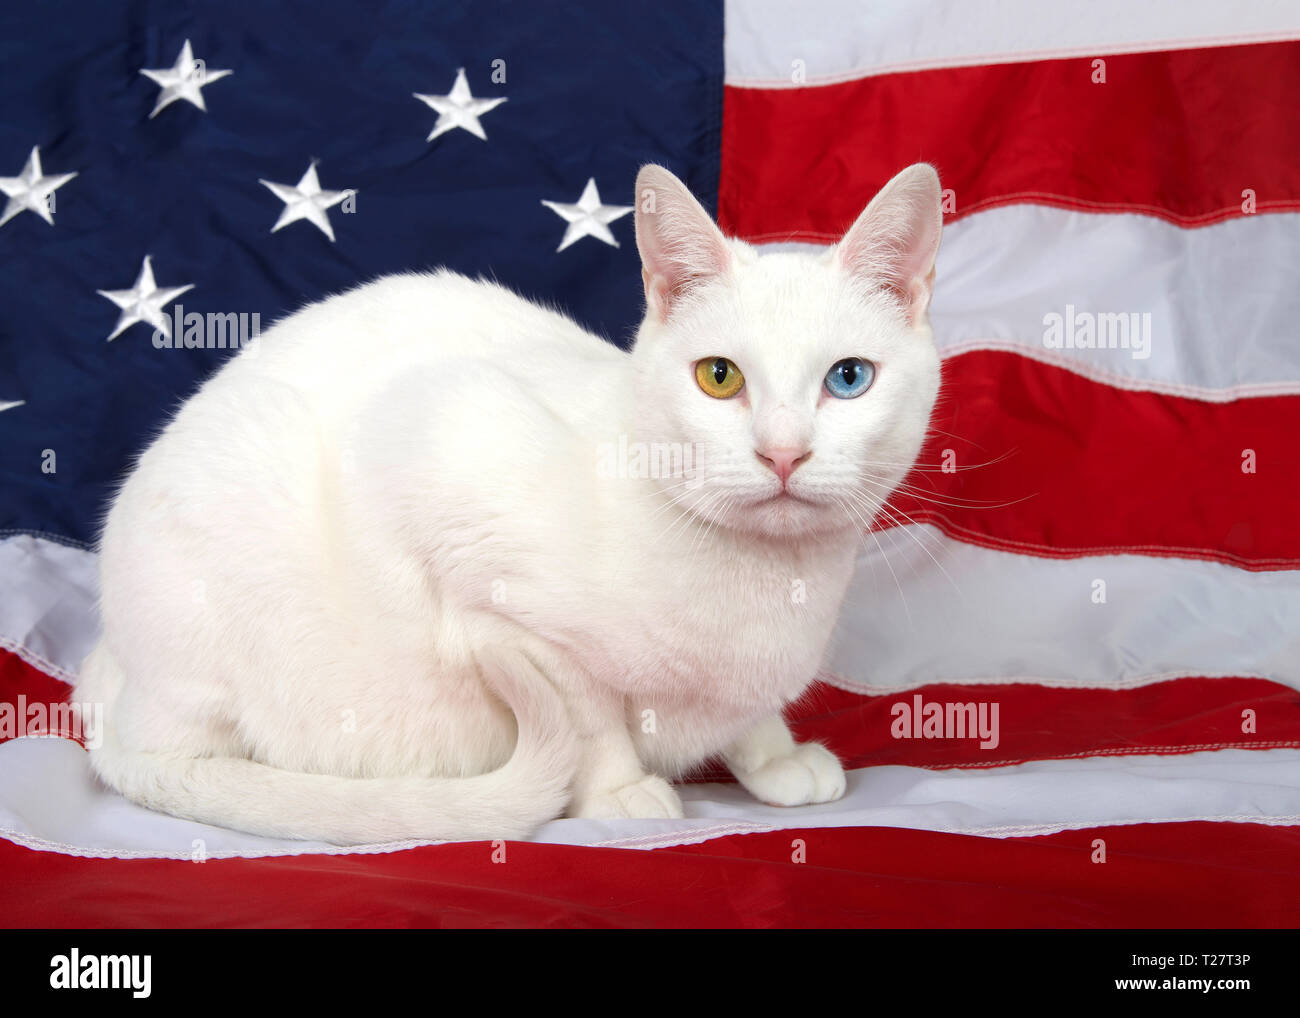 Portrait of a white cat with heterochromia (odd-eyes) crouched on an American flag, looking directly at viewer, tail curled up cute in front of her. P - Stock Image